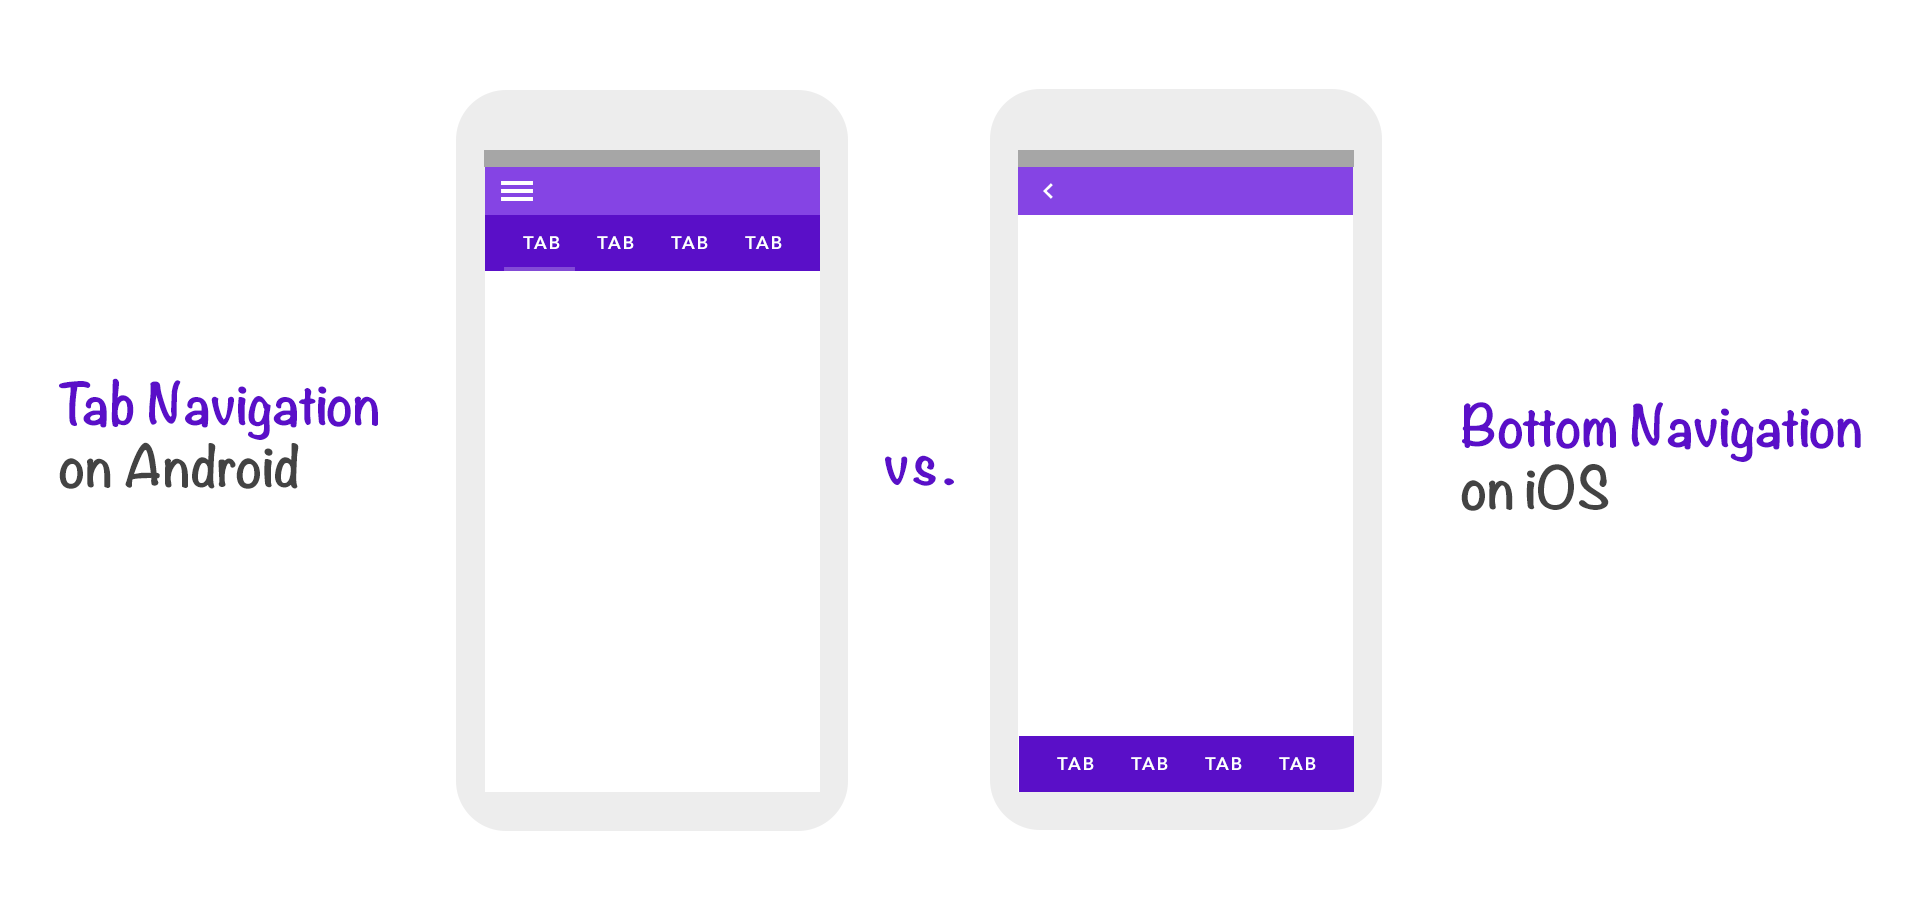 Platform specific UI pattern—Navigation bar on Android and iOS